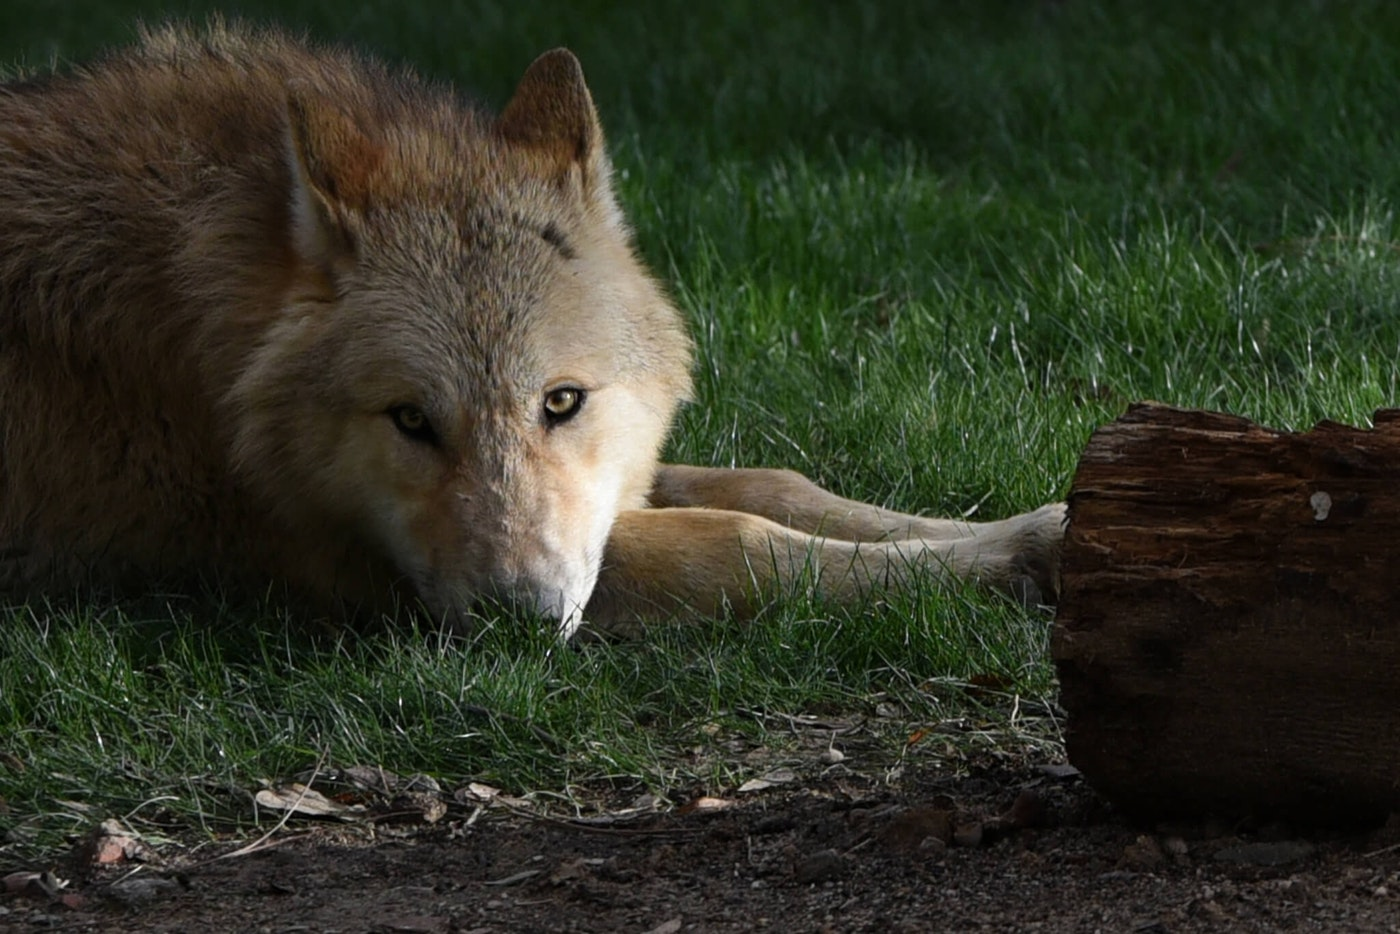 A gray wolf pictured during his first day in his enclosure. The gray wolf or grey wolf, also known as the timber wolf or western wolf, is a canine native to the wilderness and remote areas of Eurasia and North America.